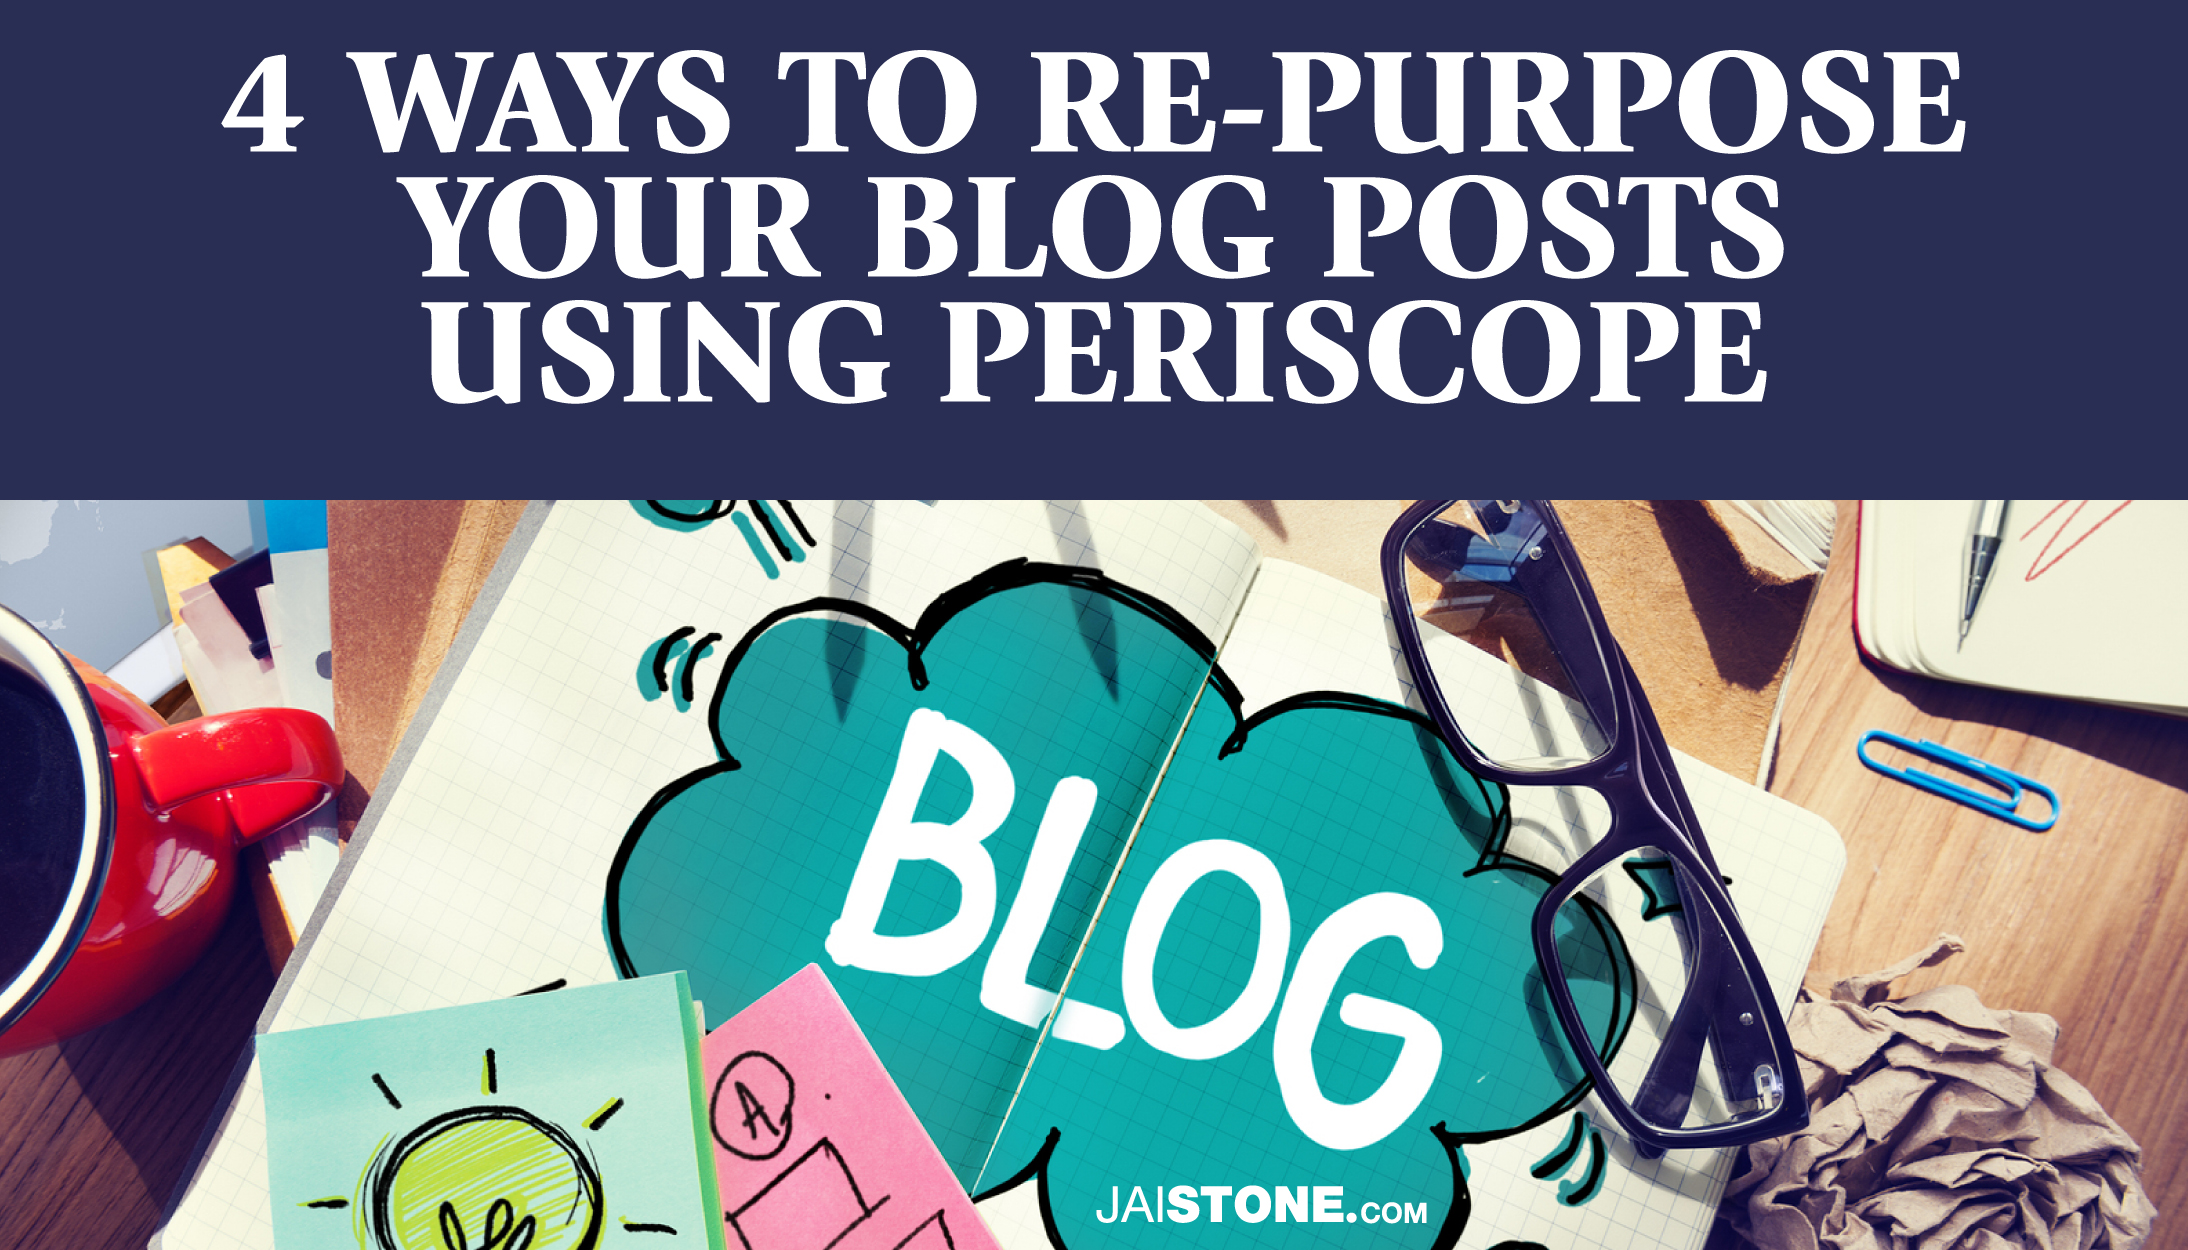 4 Ways To Re-Purpose Your Blog Posts Using Periscope